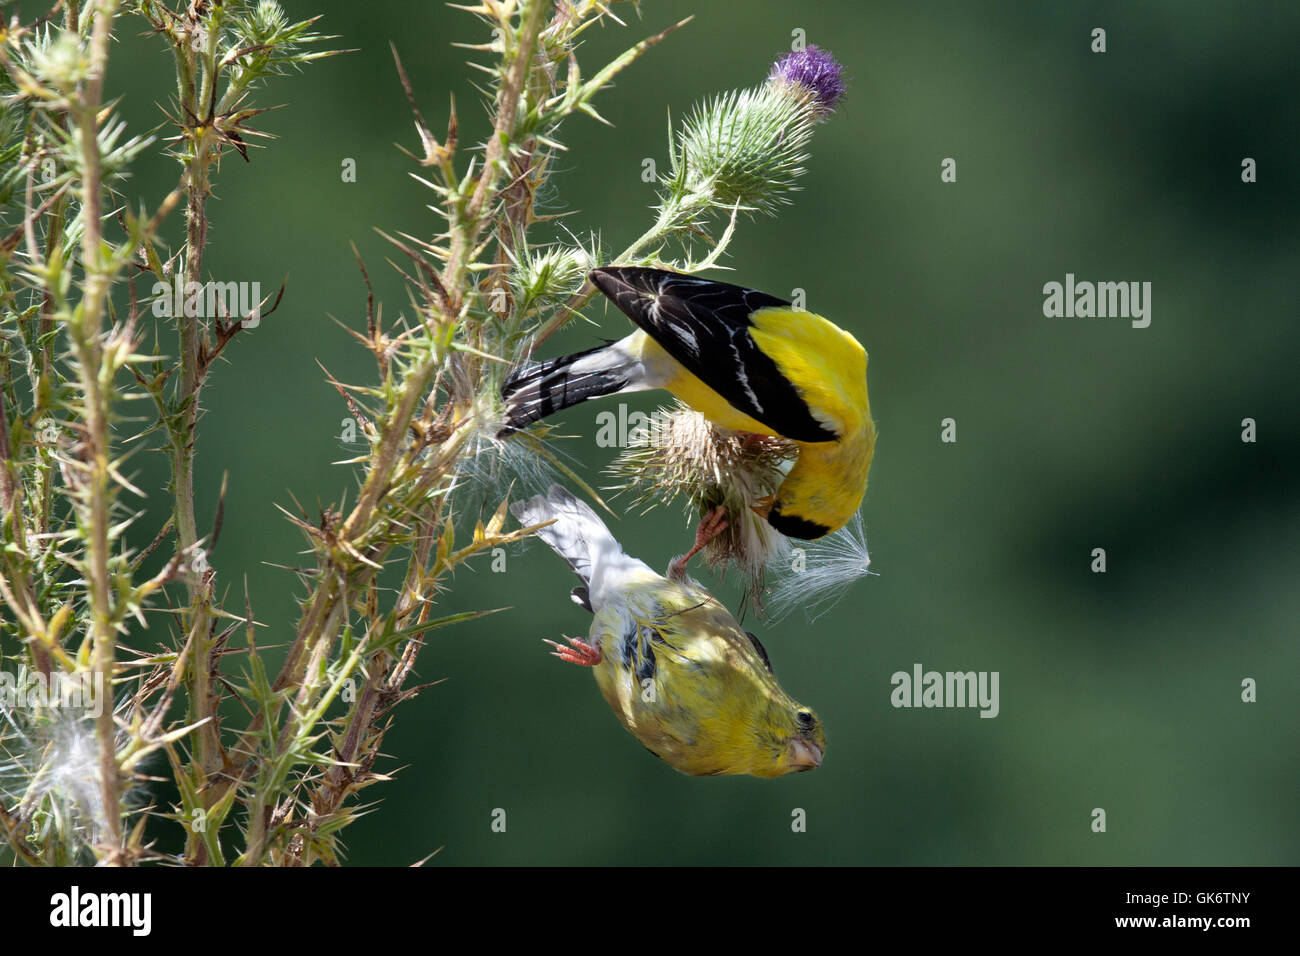 Male and female goldfinches squabble over thistle plant - Stock Image